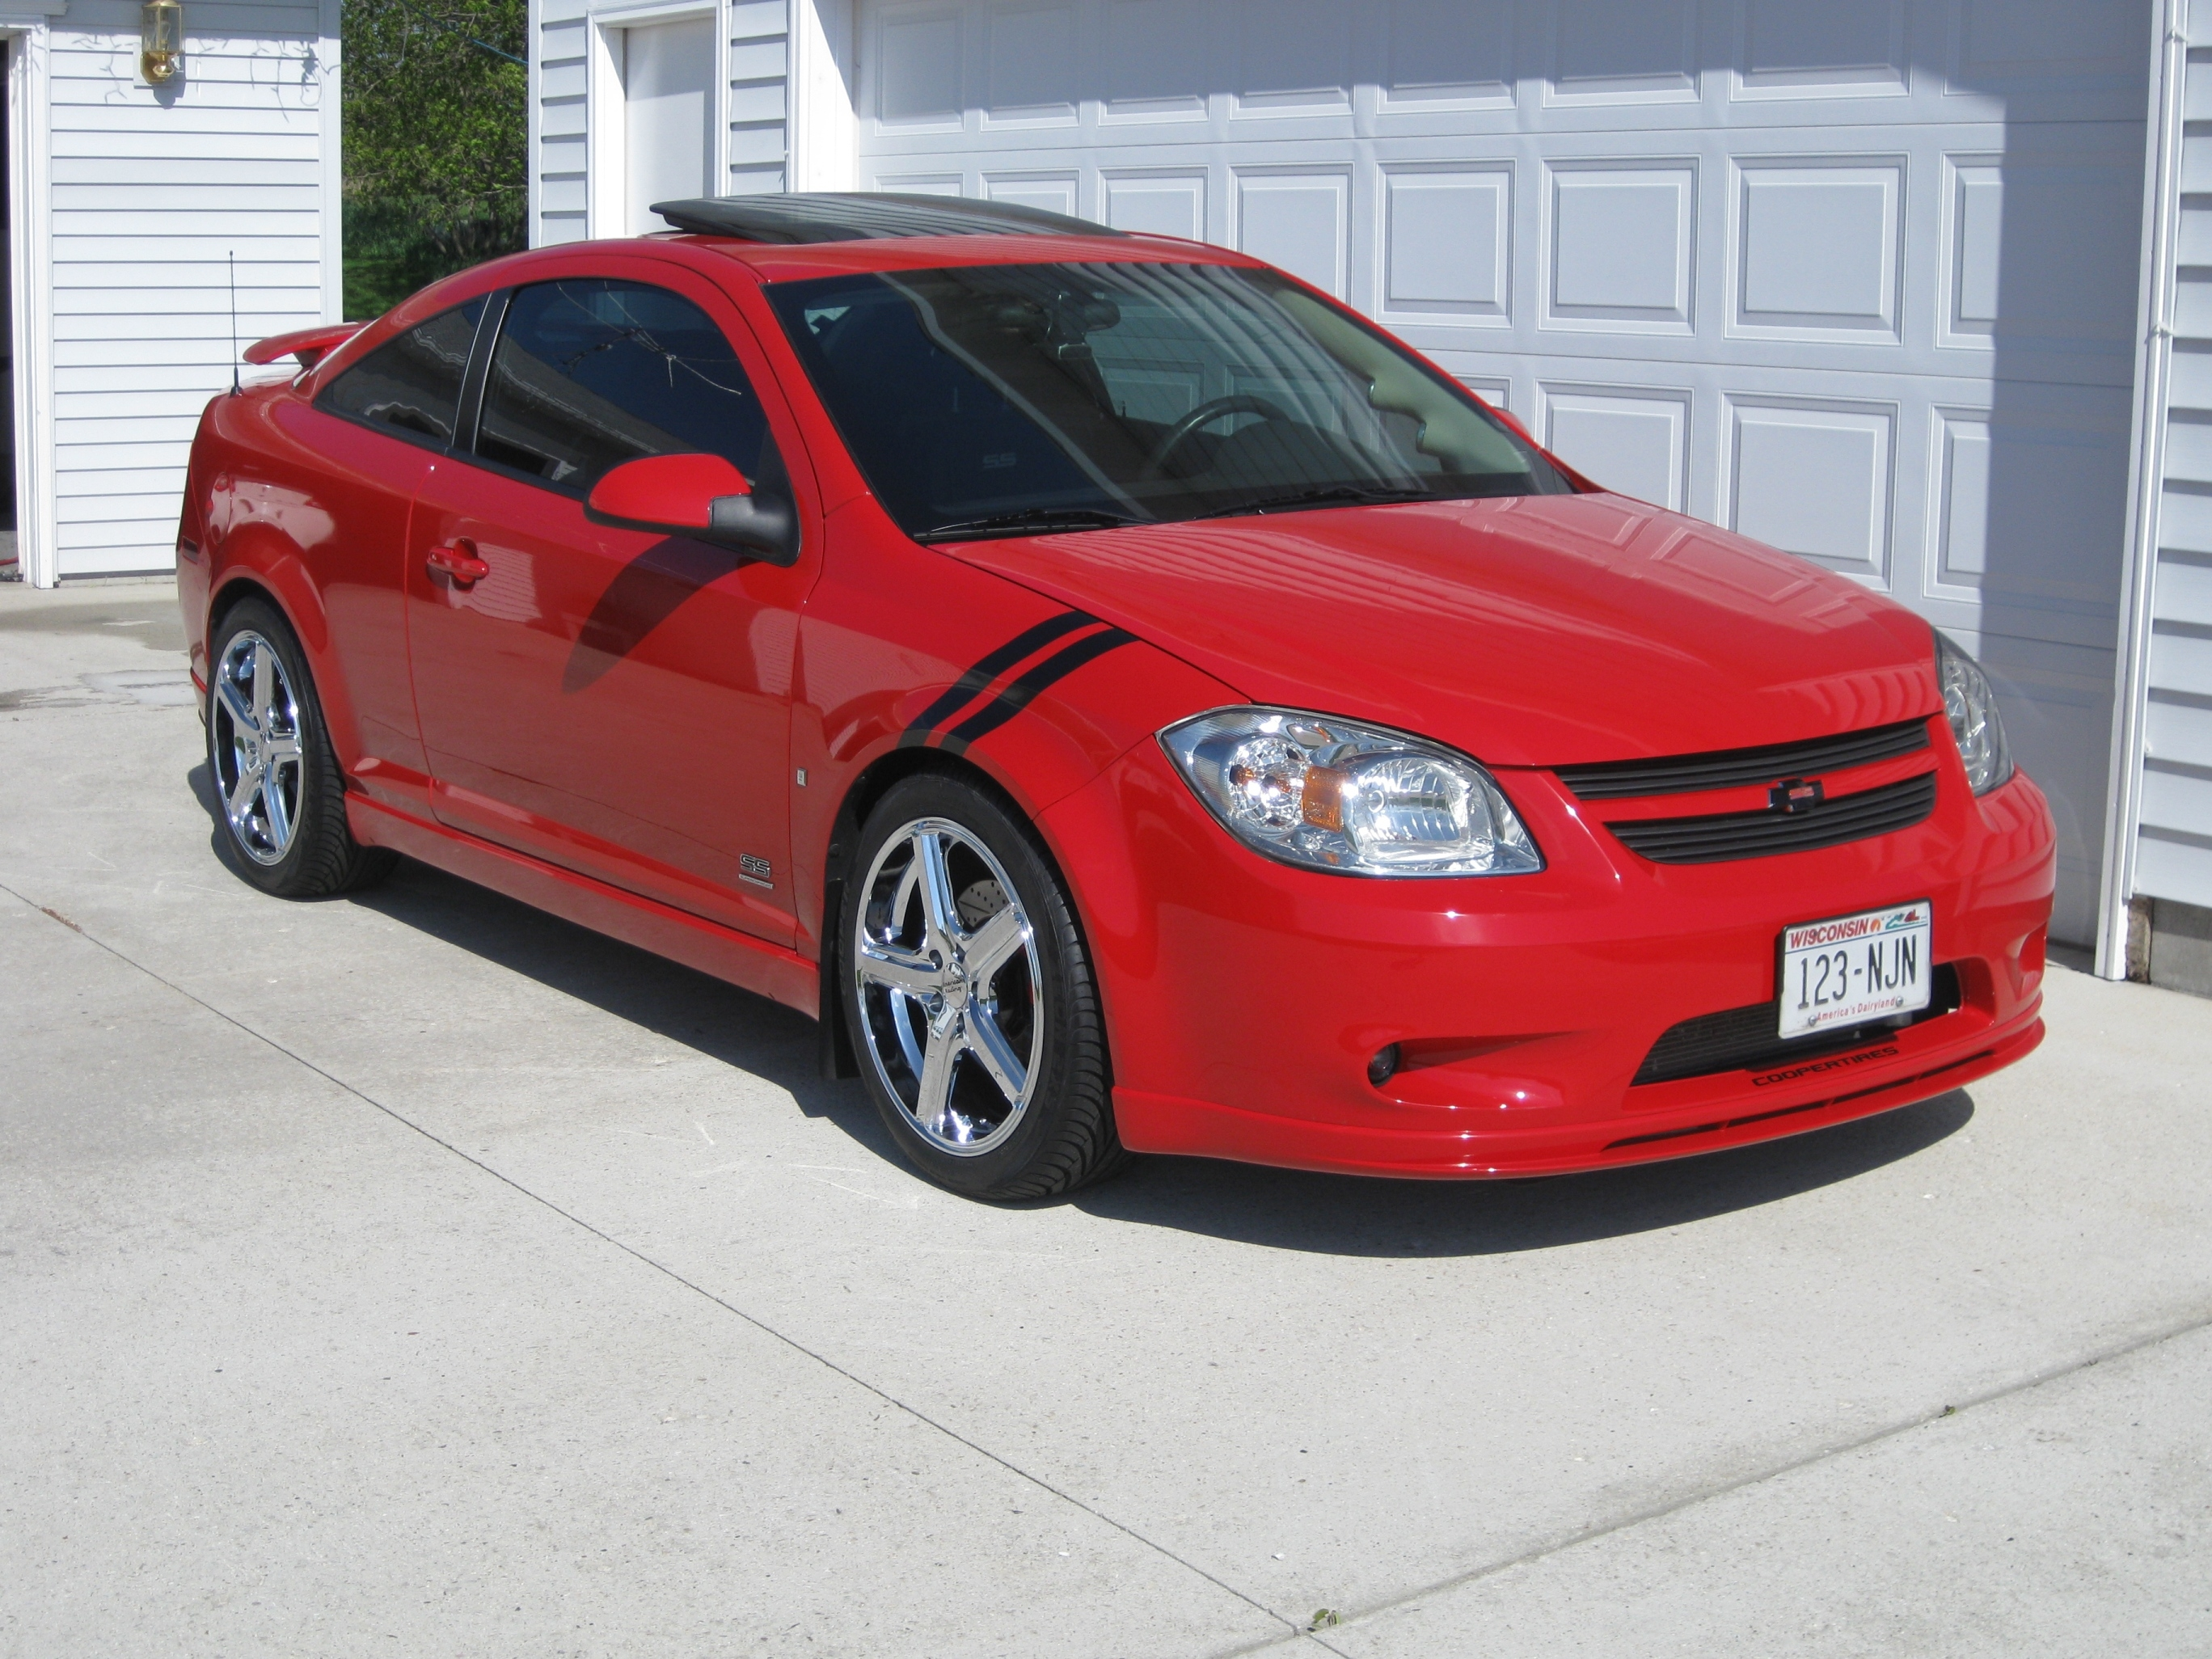 Blacksct 2007 Chevrolet CobaltSS Supercharged Coupe 2D Specs